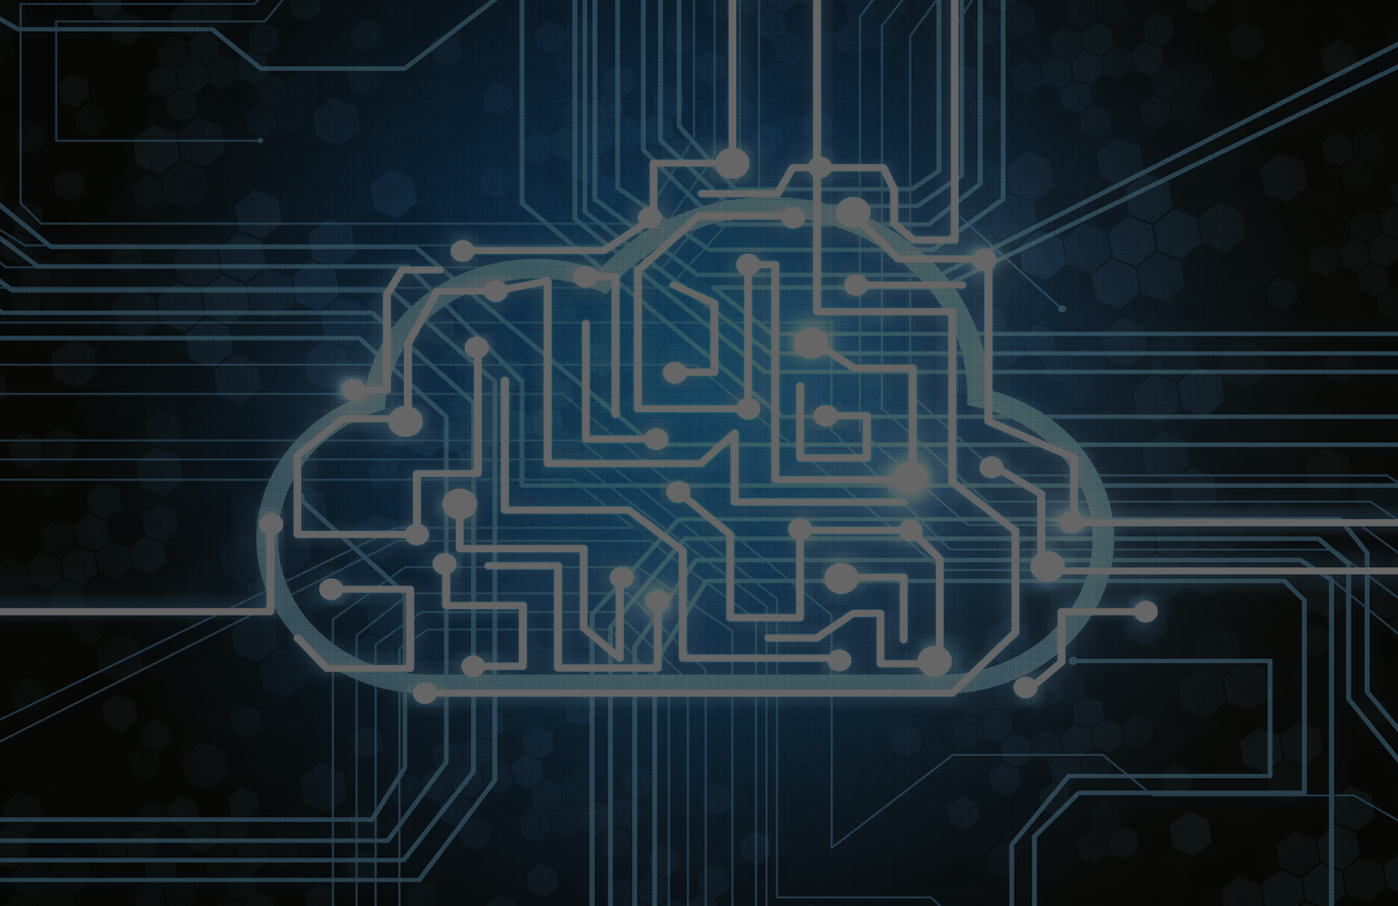 Circuitry over cloud icon